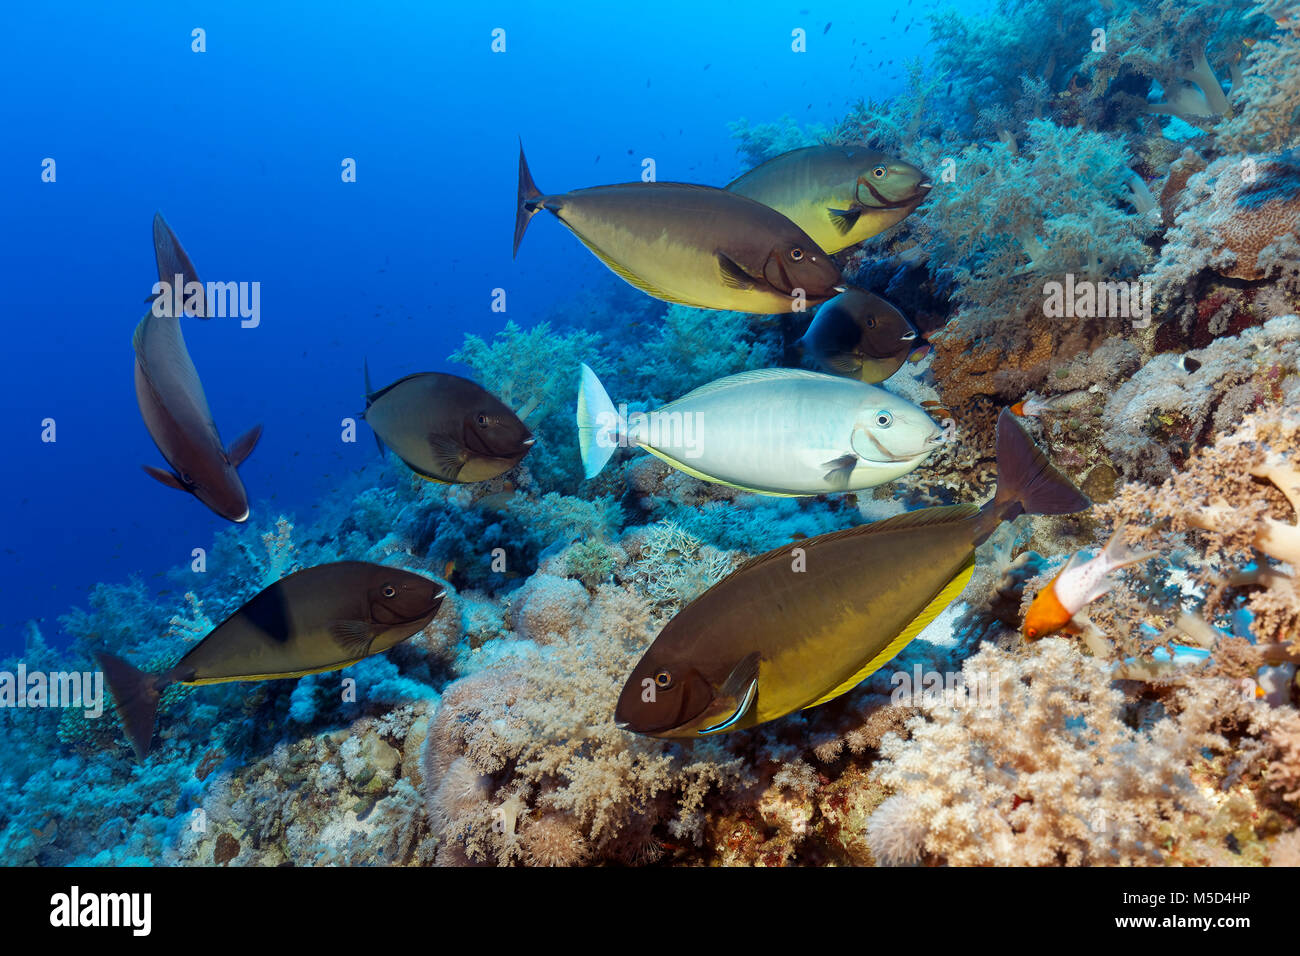 Fish swarm stock photos fish swarm stock images alamy for Fish cleaning station near me